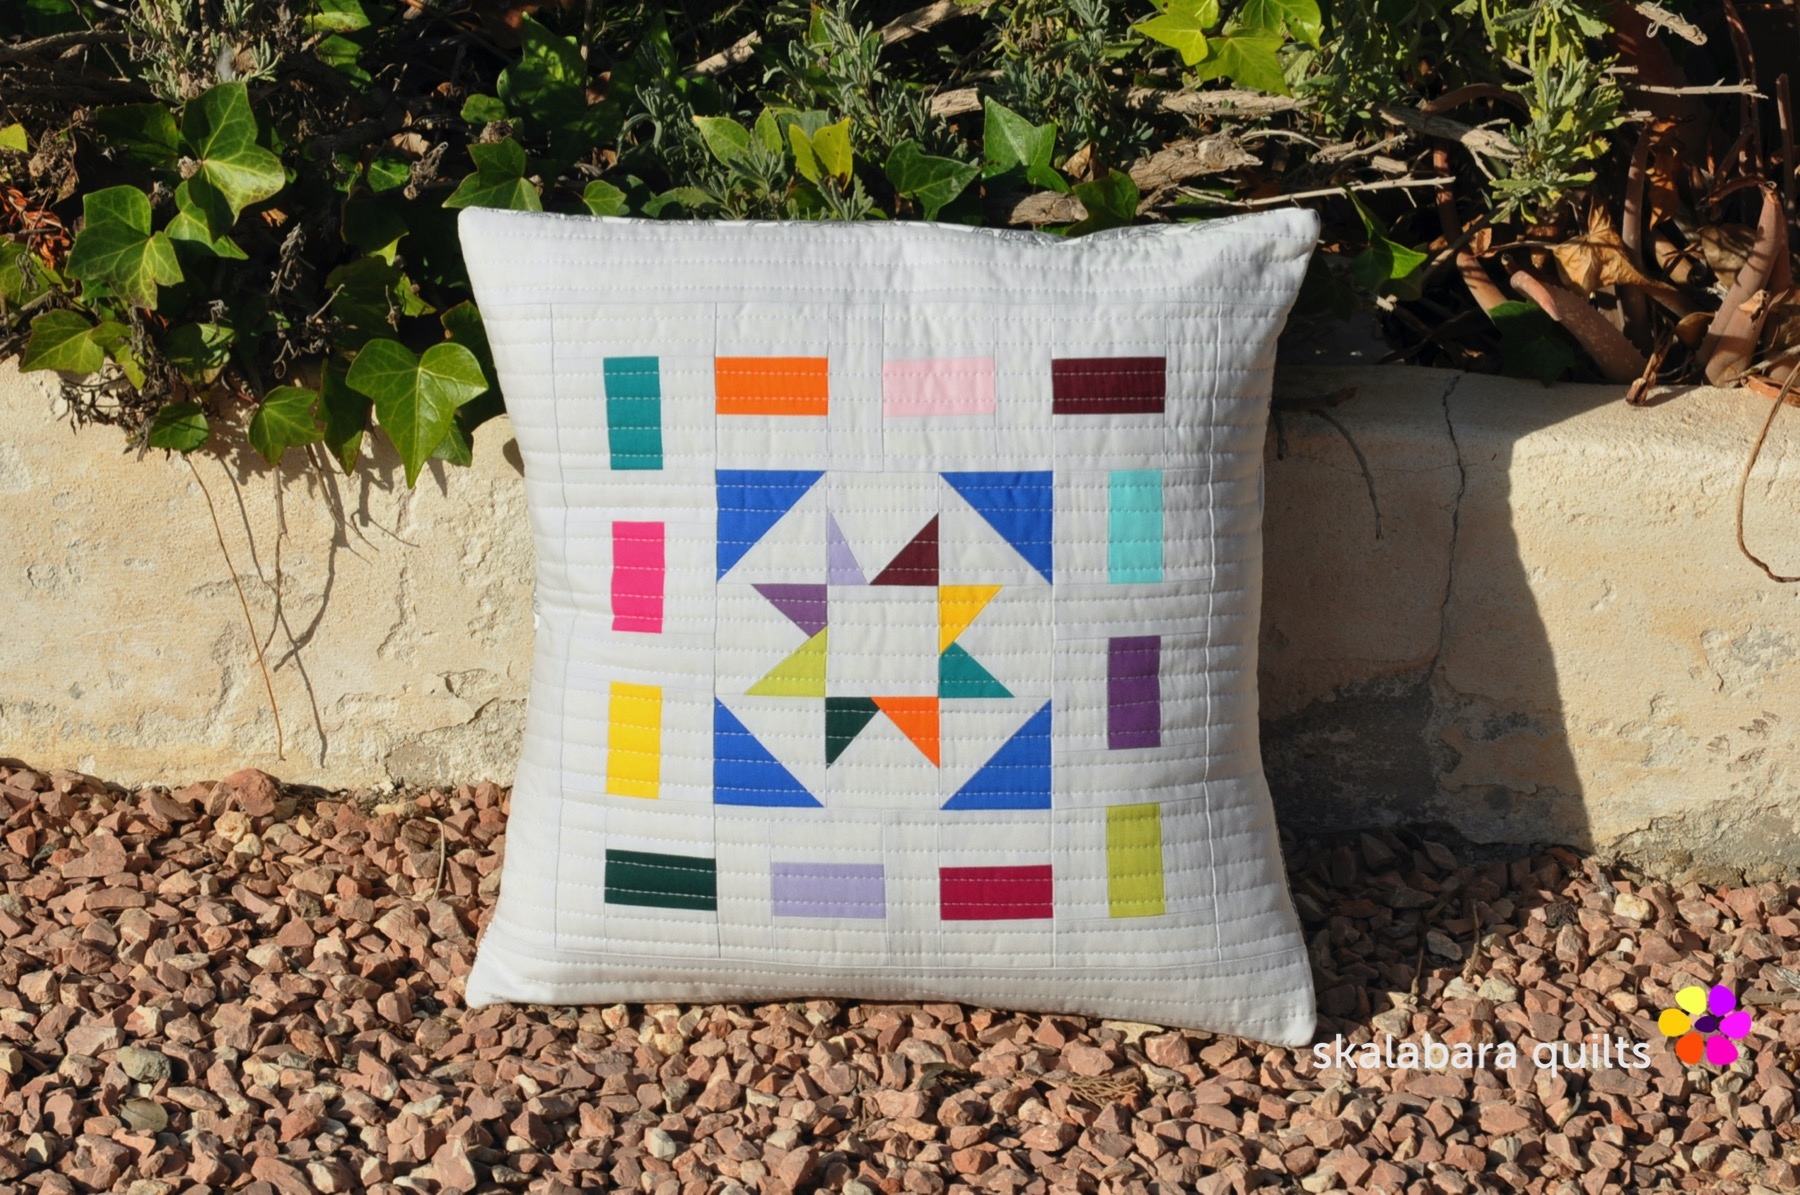 colorful cushion covers - skalabara quilts